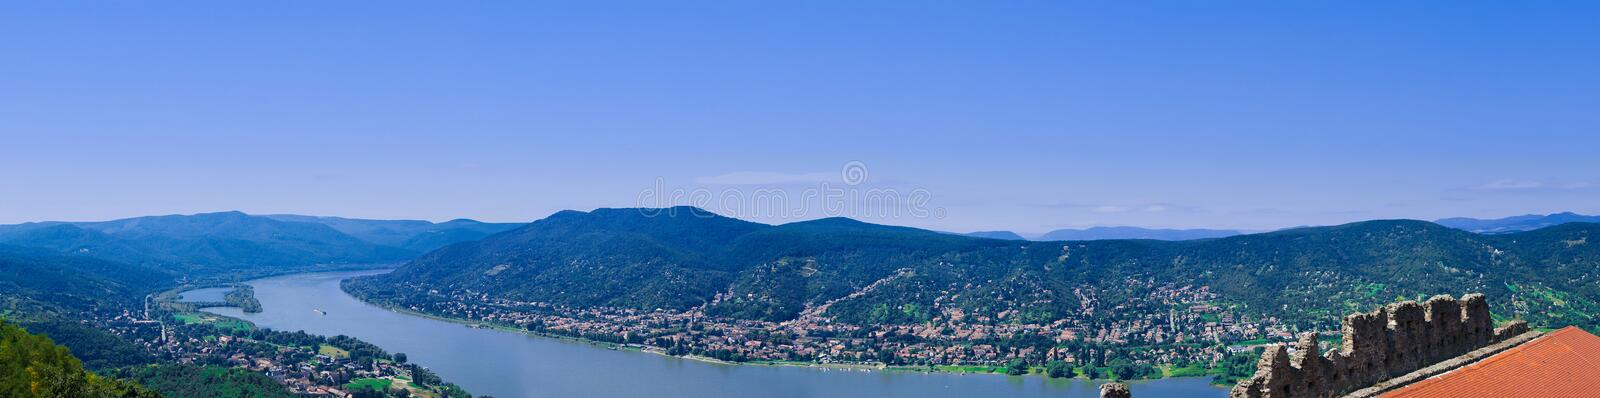 The Danube curve stock photography